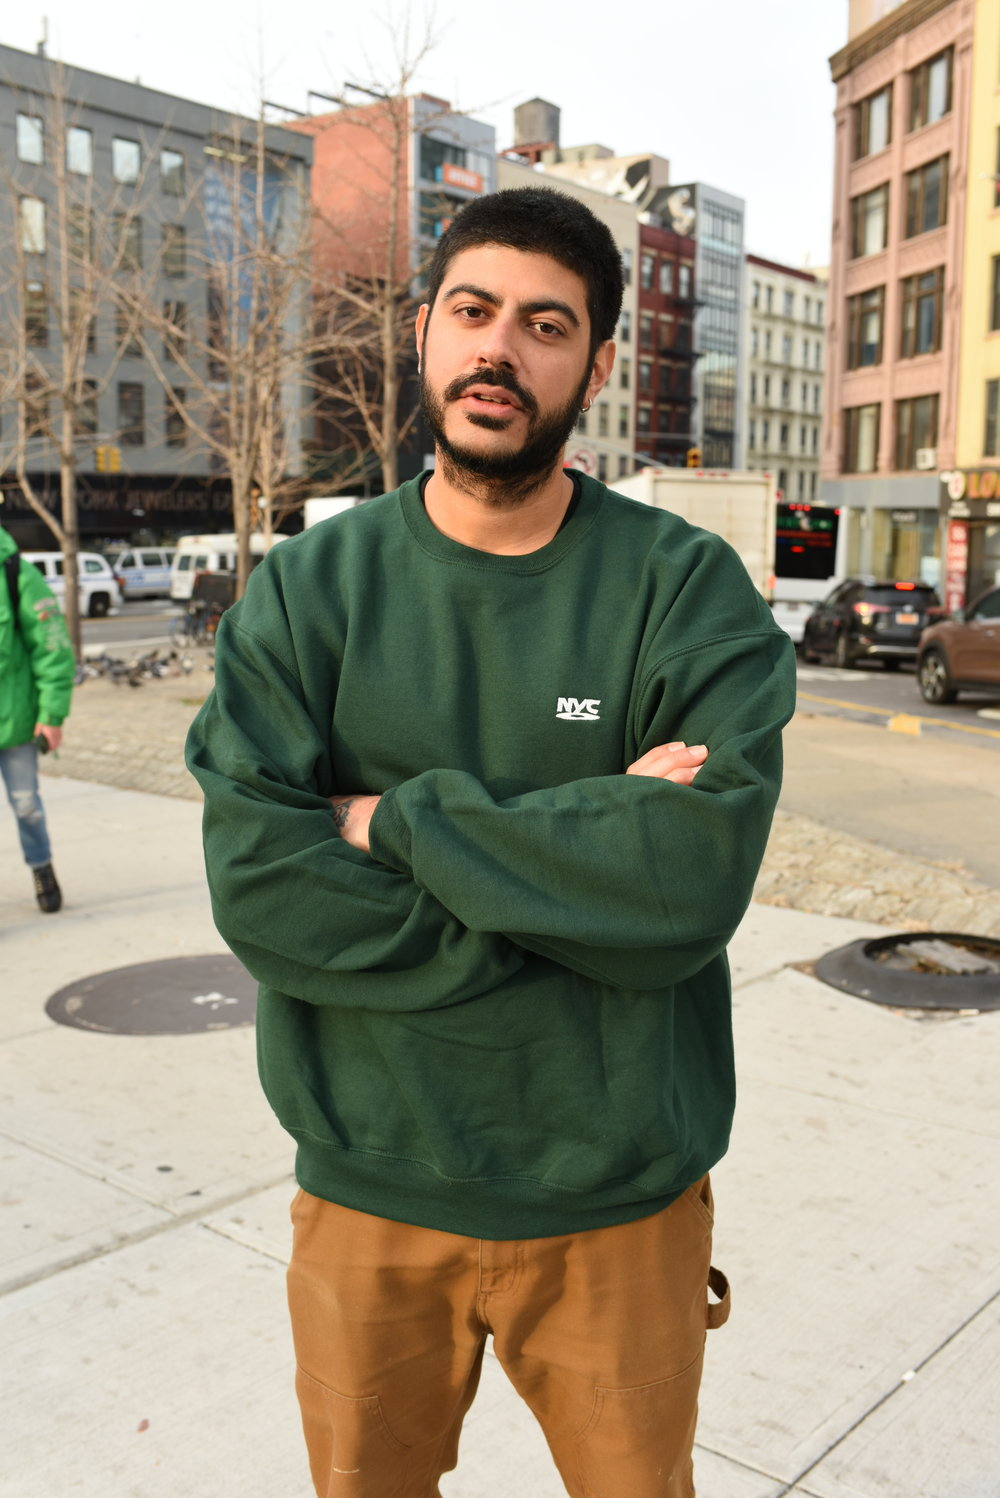 NYC - DVD - SWEATSHIRT - FOREST GREEN - ON SICK NETHI